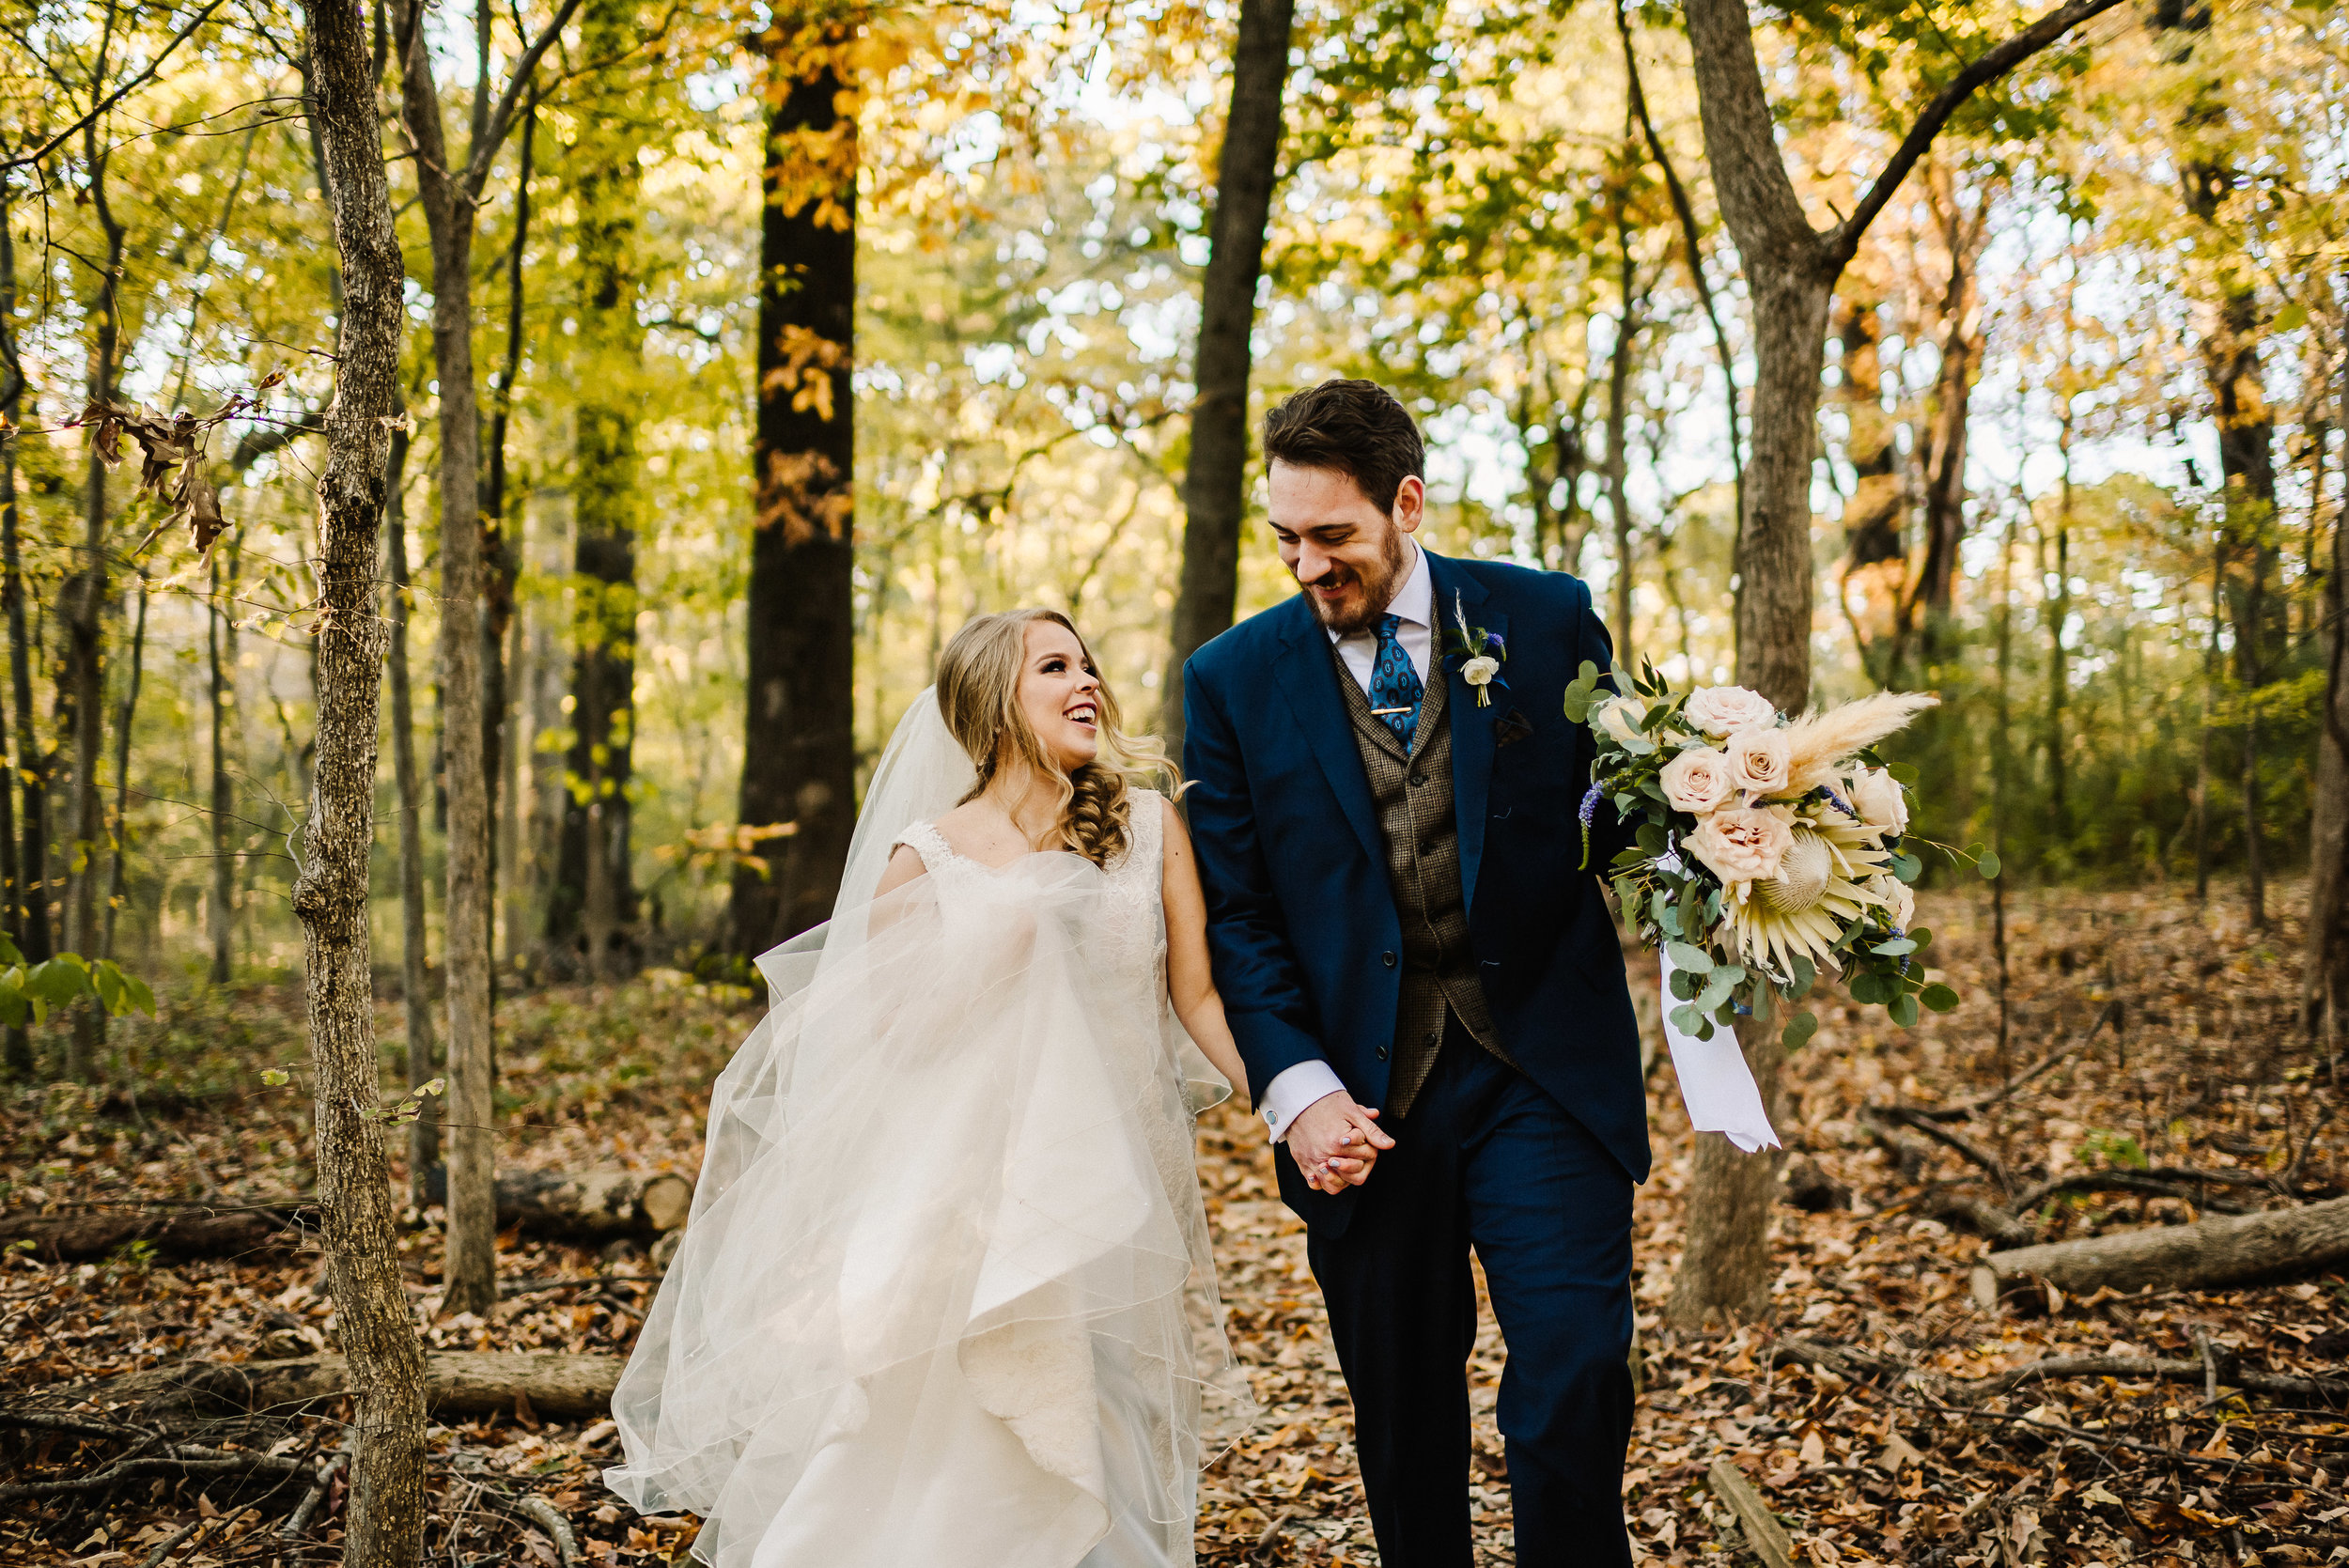 Lichterman Nature Center Wedding_La Croix Wedding_Ashley Benham Photography-528.jpg